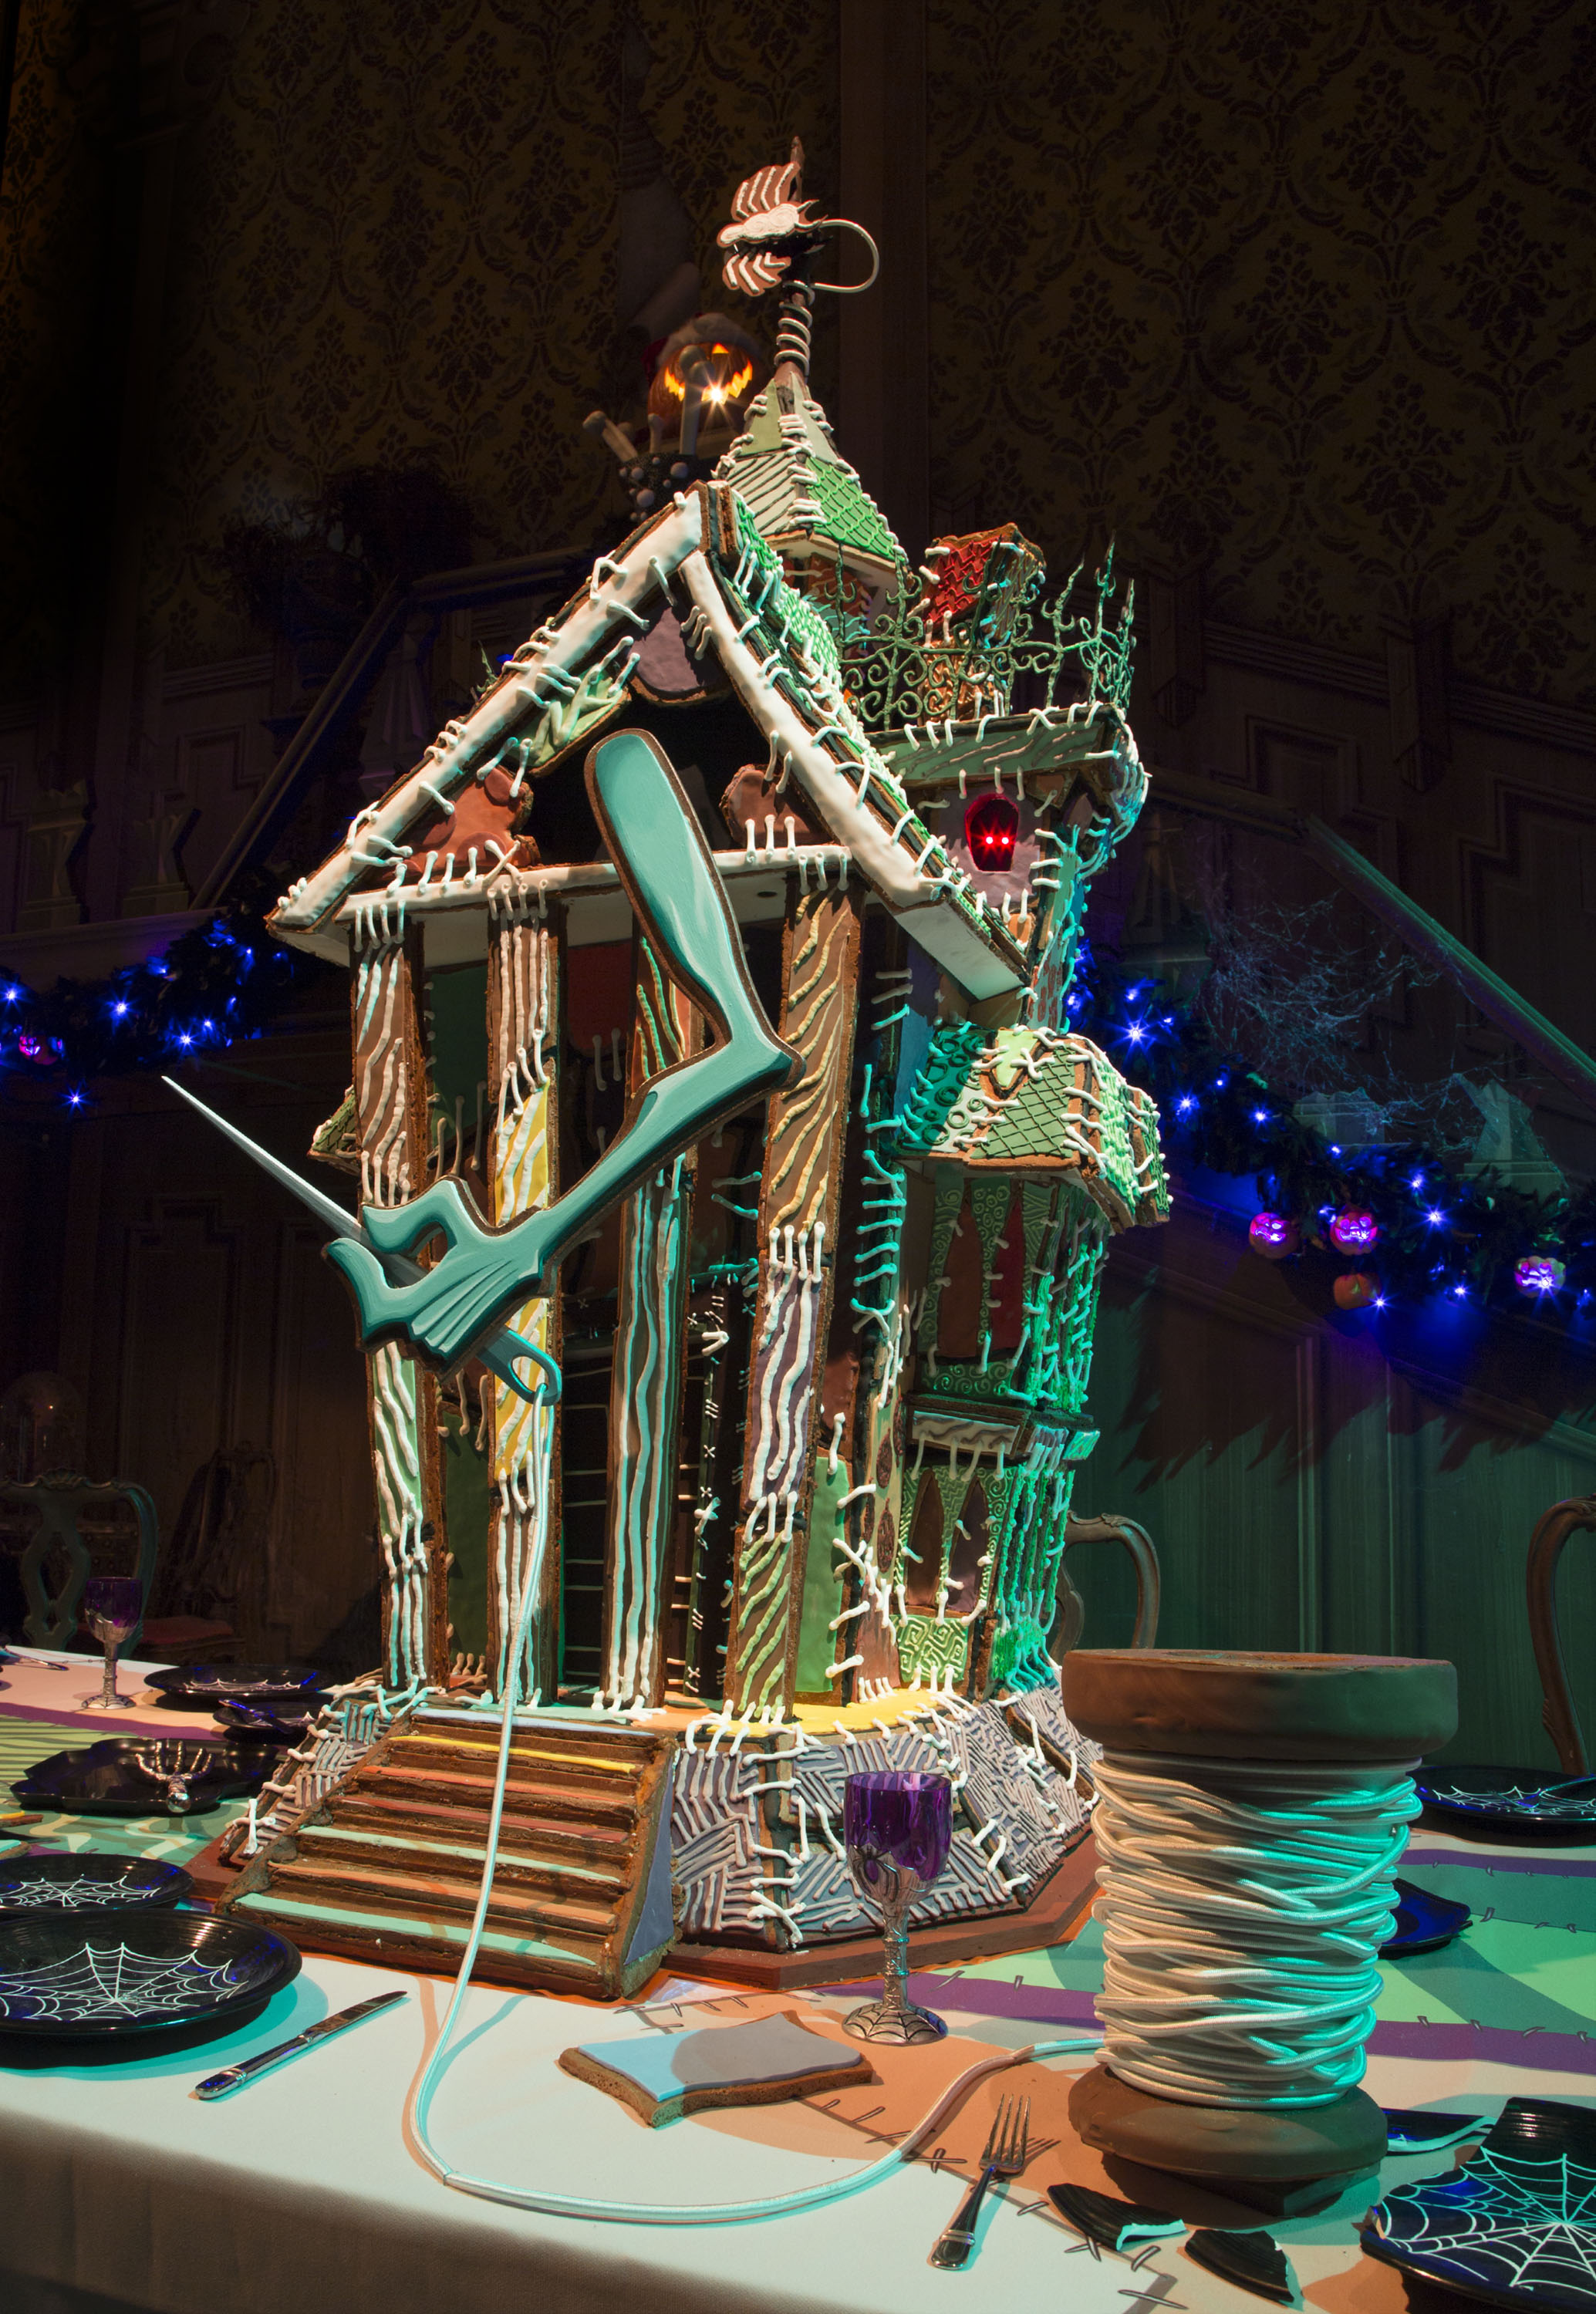 haunted mansion holiday gingerbread house now through jan 8 2017 haunted mansion - Nightmare Before Christmas Gingerbread House